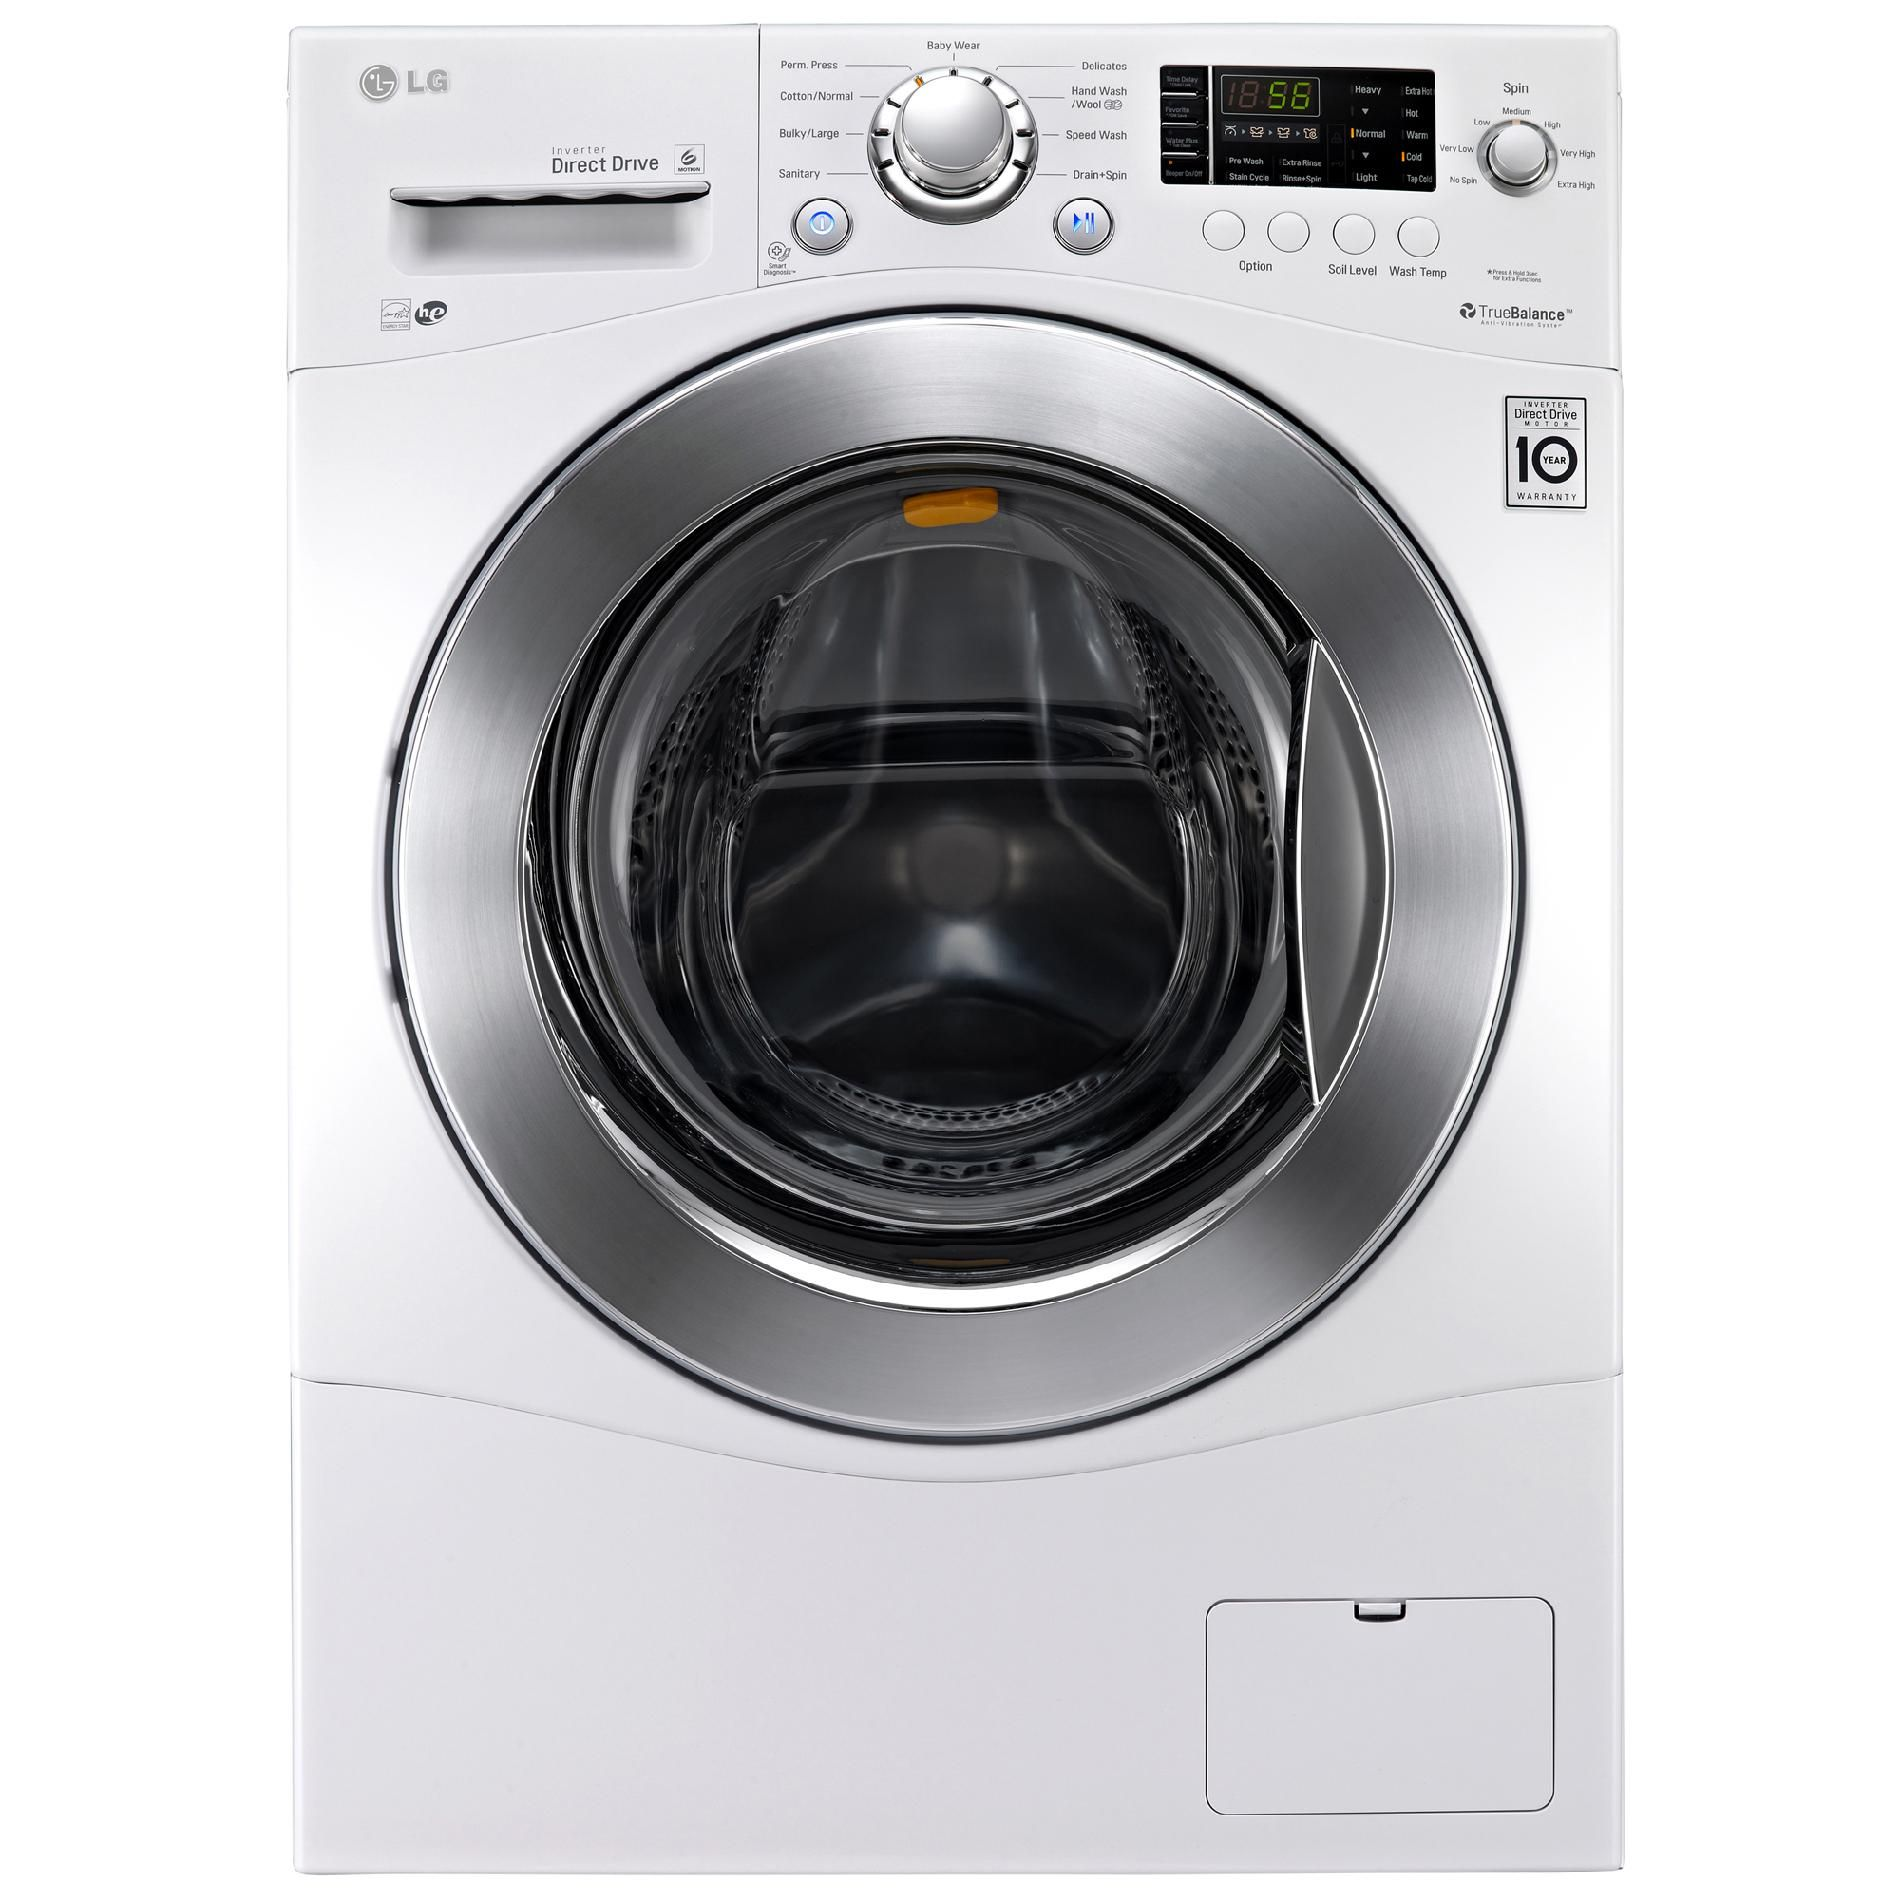 Sears Appliances Tools Apparel And More From Craftsman Kenmore Diehard And Other Leading Bra Ventless Washer Dryer Compact Washer And Dryer Ventless Dryer